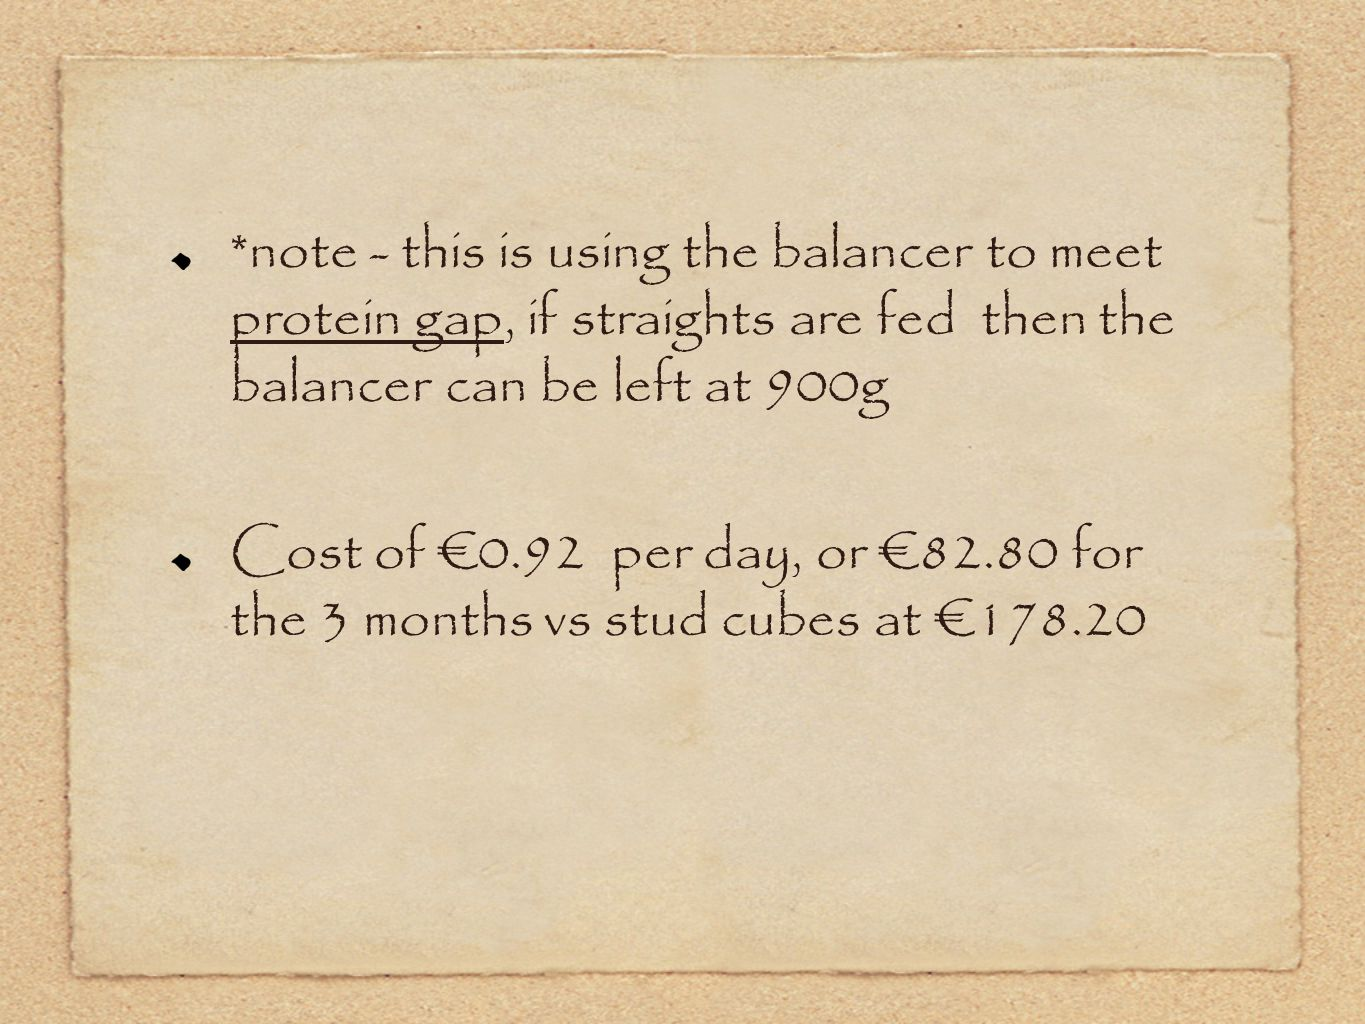 *note - this is using the balancer to meet protein gap, if straights are fed then the balancer can be left at 900g Cost of €0.92 per day, or €82.80 fo